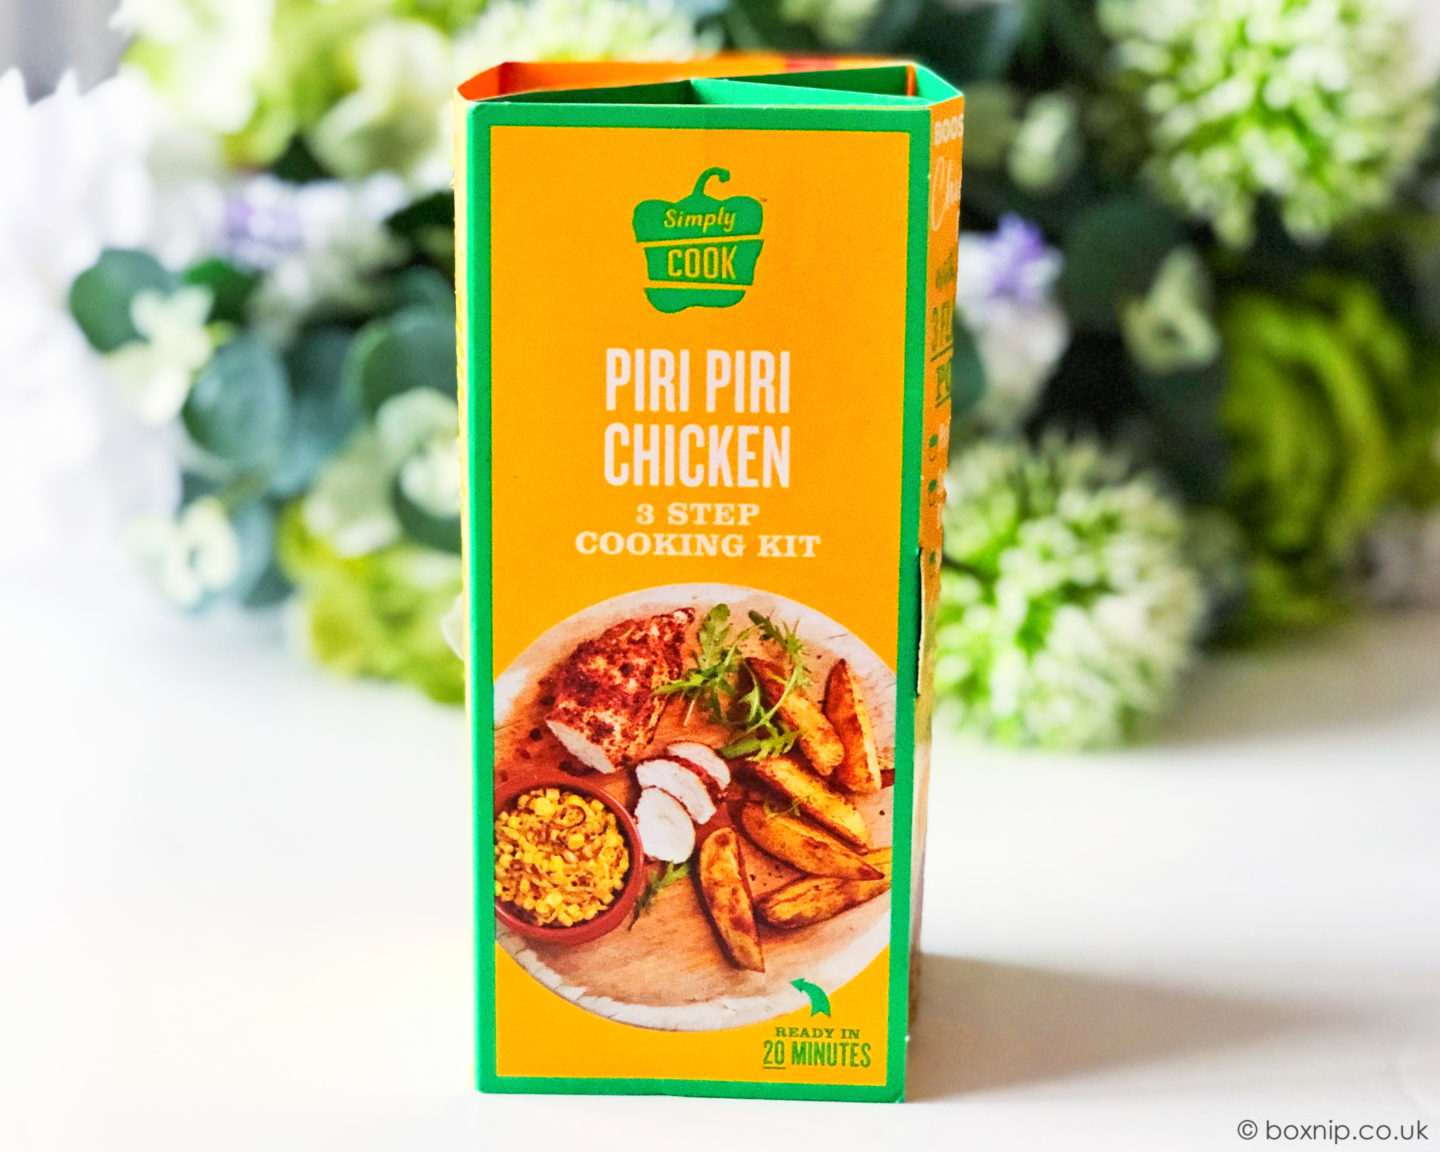 Simply Cook Piri Piri Chicken 3 STep Meal Kit - July 2019 Degusta Box